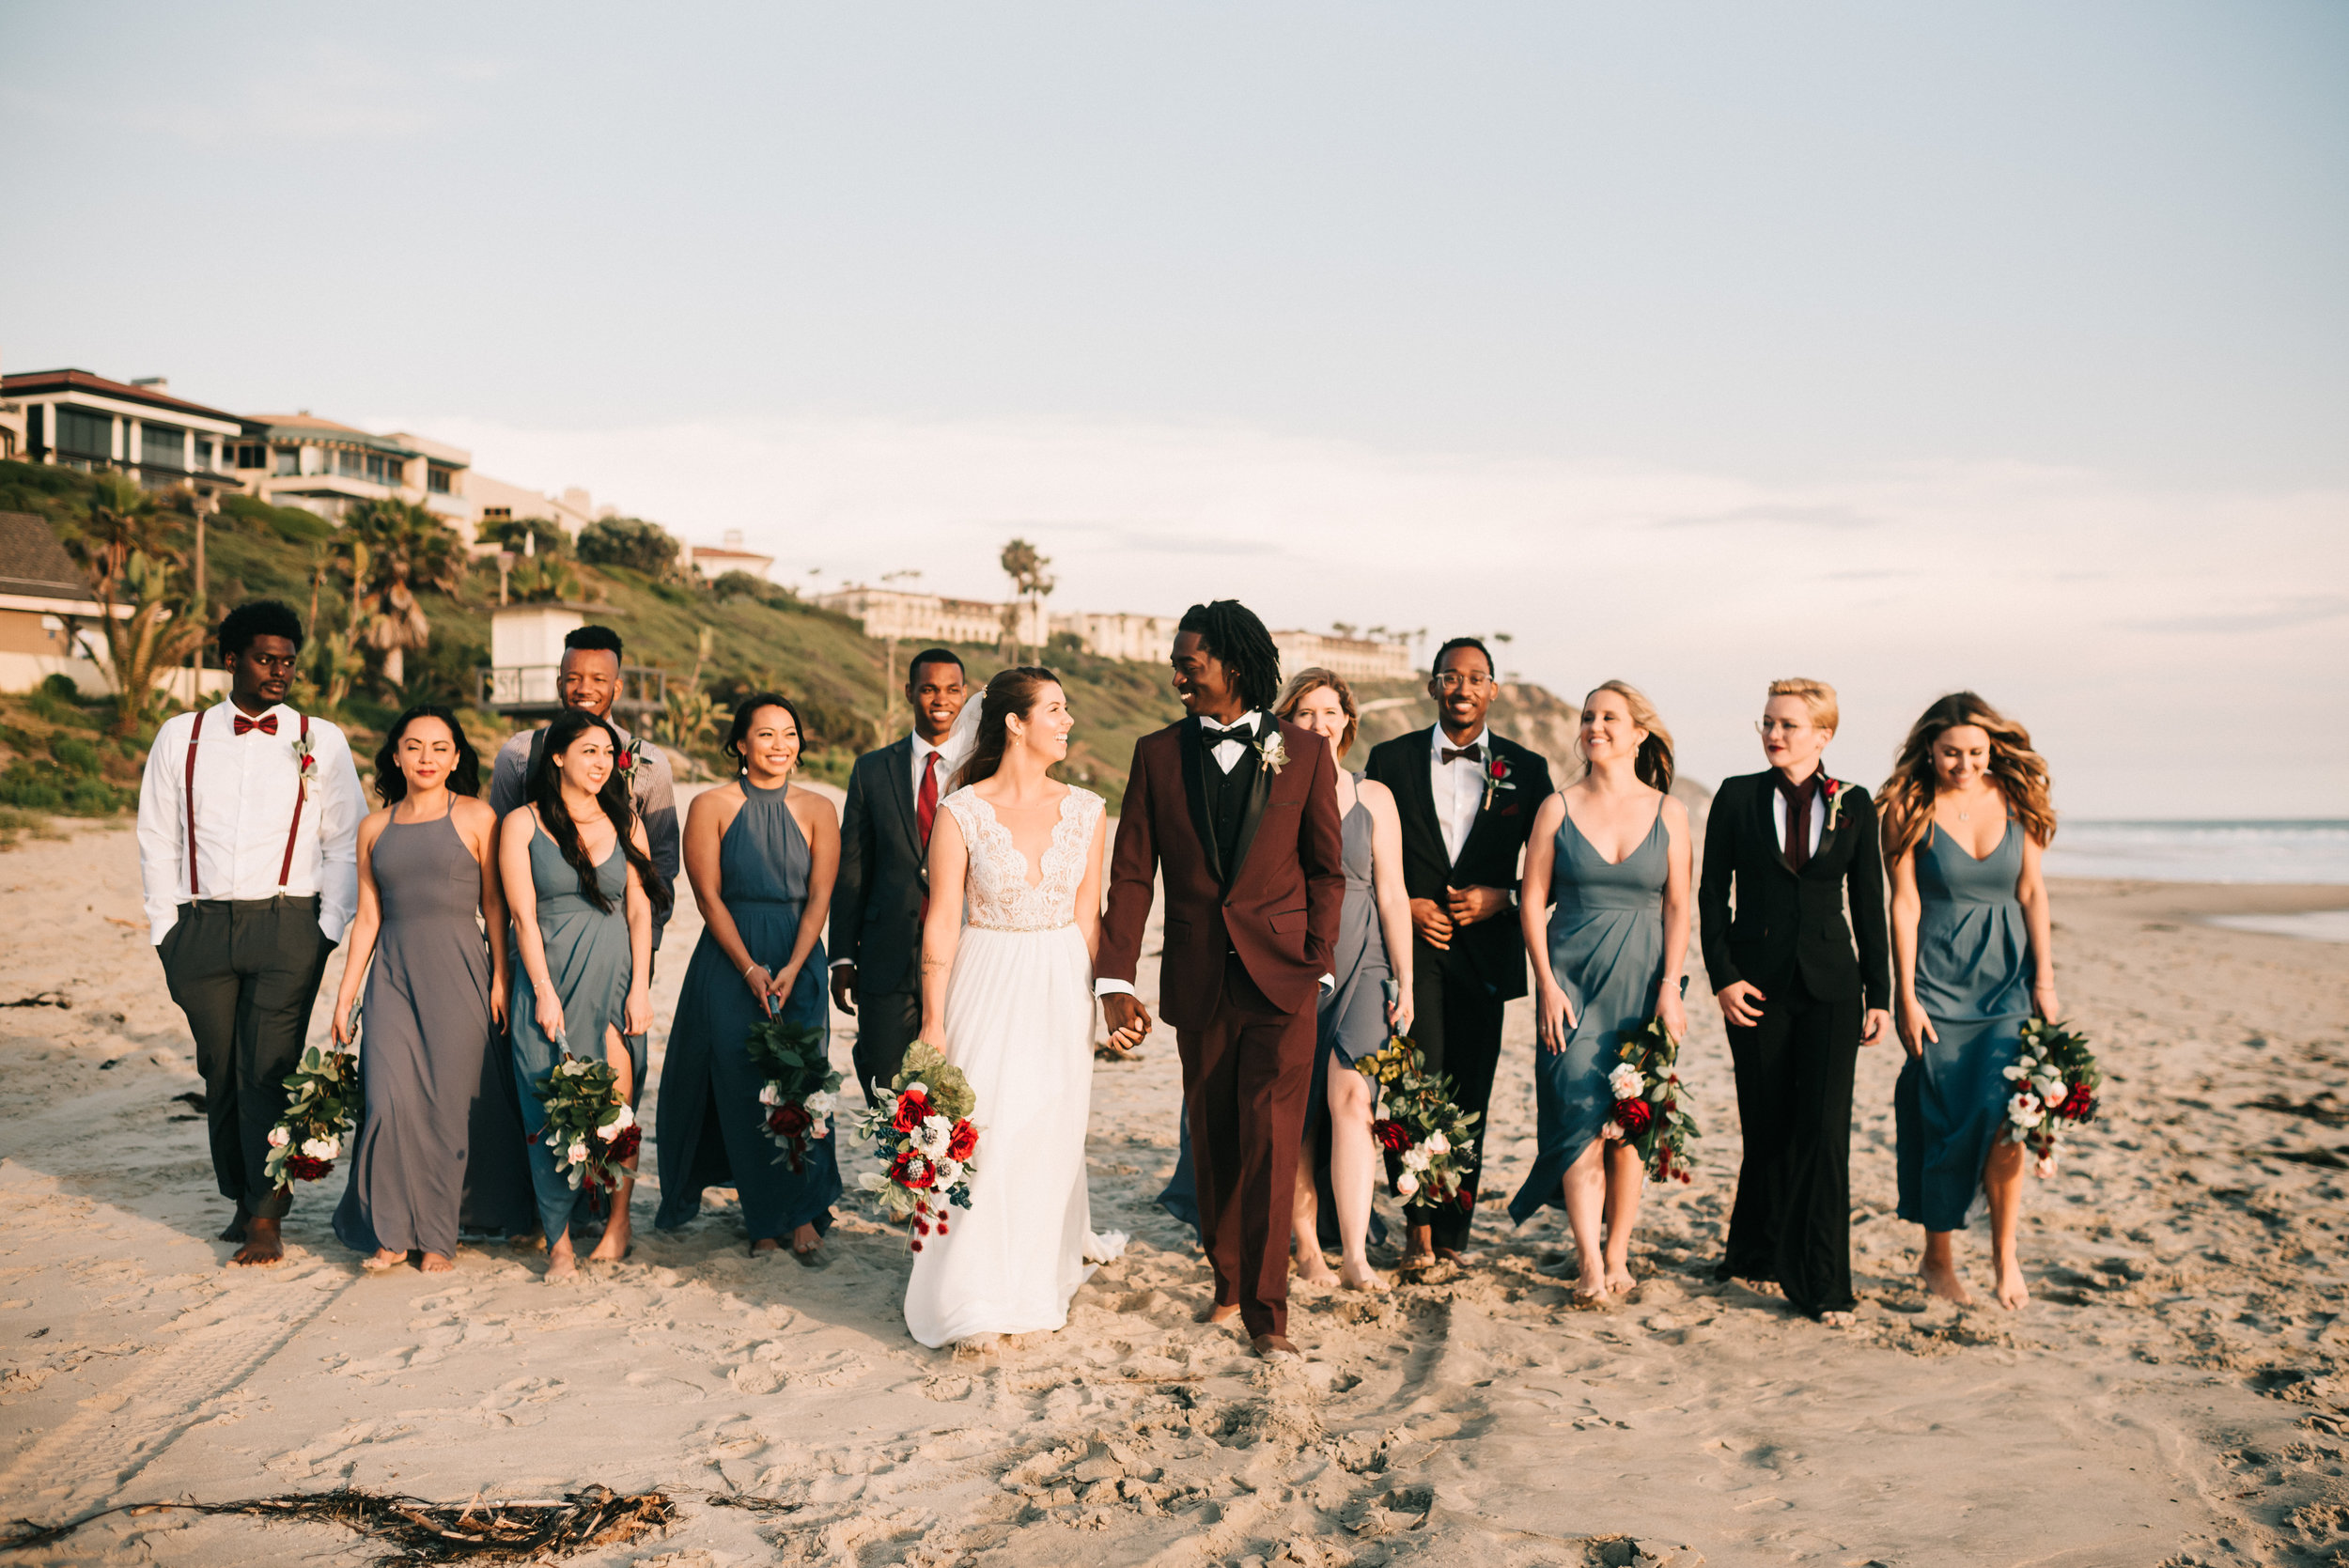 southern california laguna beach salt creek beach los angeles socal boho bay area akland san francisco engagement wedding nontraditional fun creative eclectic photographer magic-763.jpg